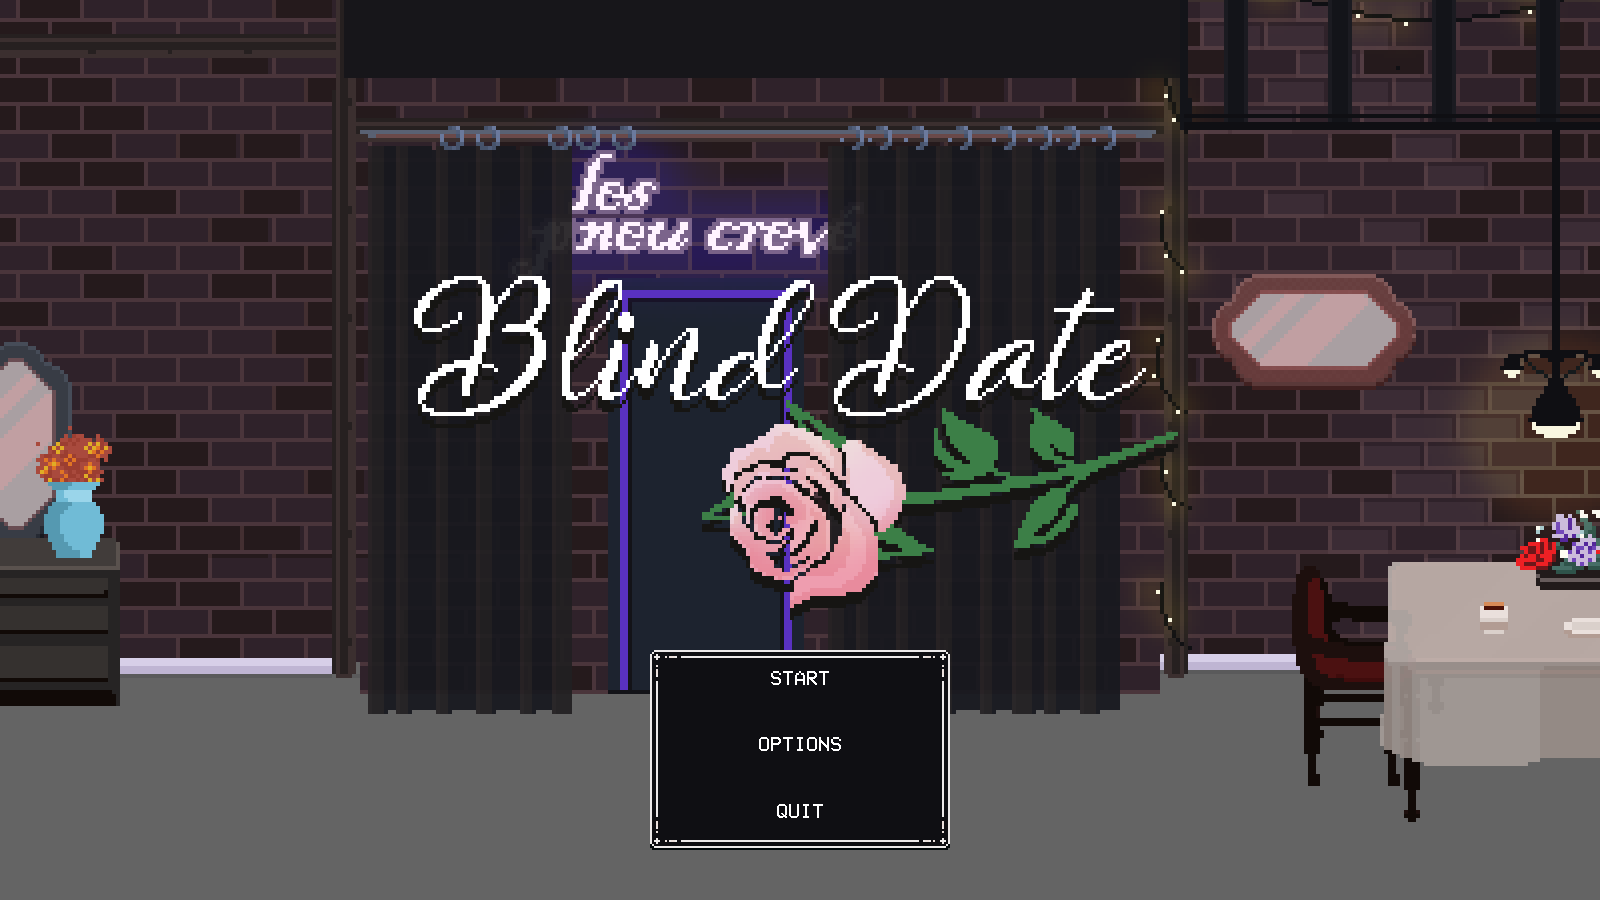 Blind dating ending